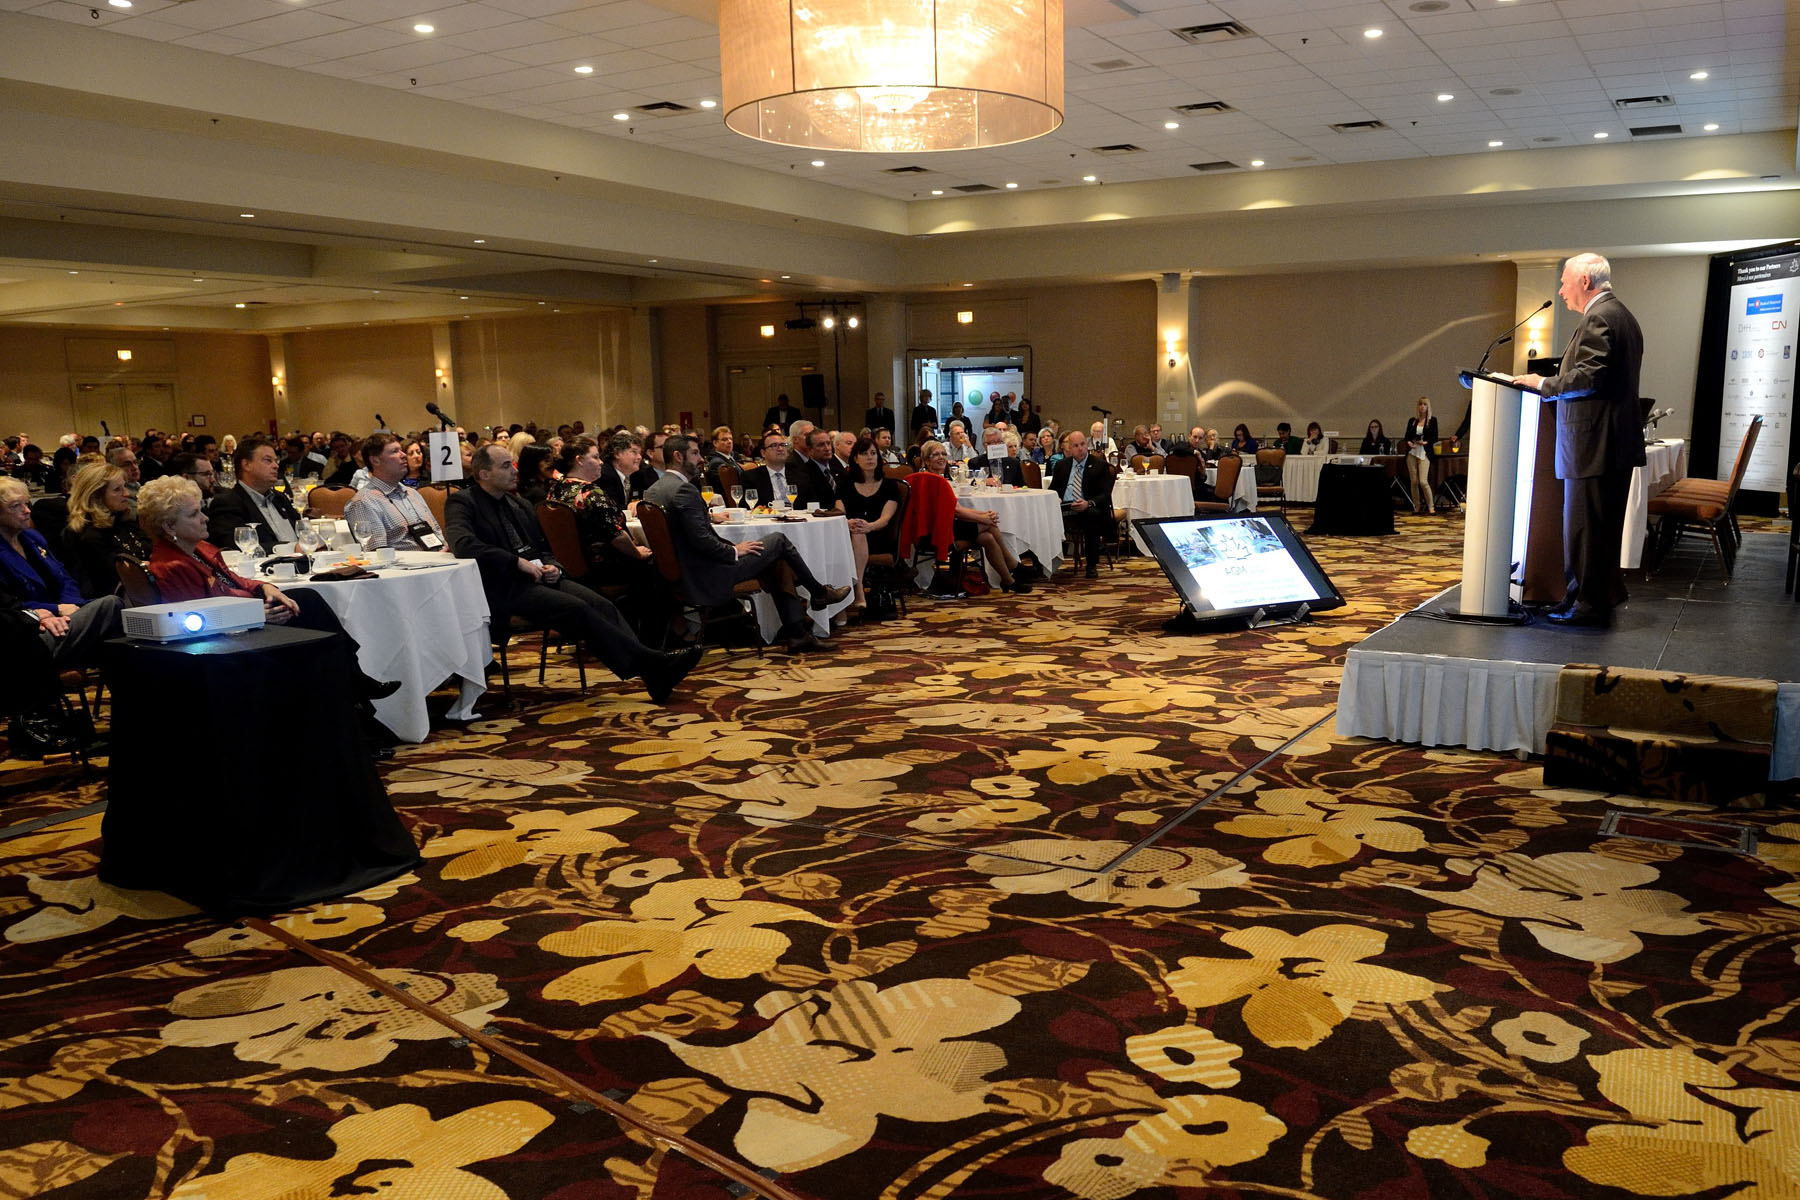 The Annual General Meeting of the Canadian Chamber of Commerce offers its members the opportunity to discuss issues of importance to the Canadian business community.